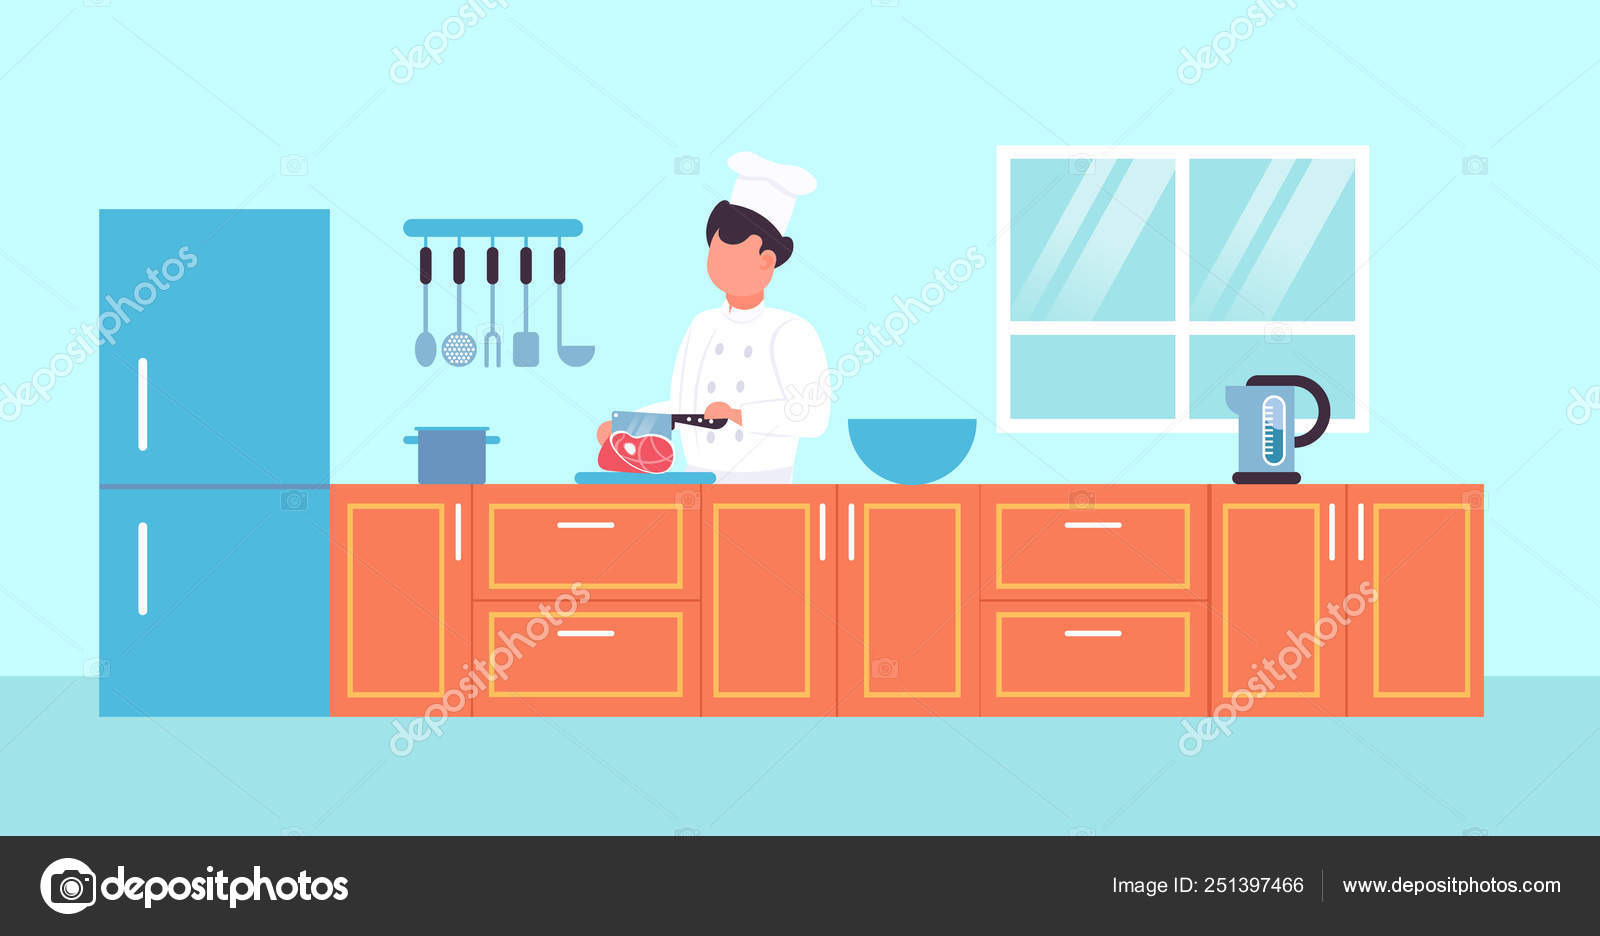 20baaab2 Male chef cutting pork meat with knife male restaurant worker in uniform  and hat cooking food concept modern kitchen interior horizontal portrait  flat ...